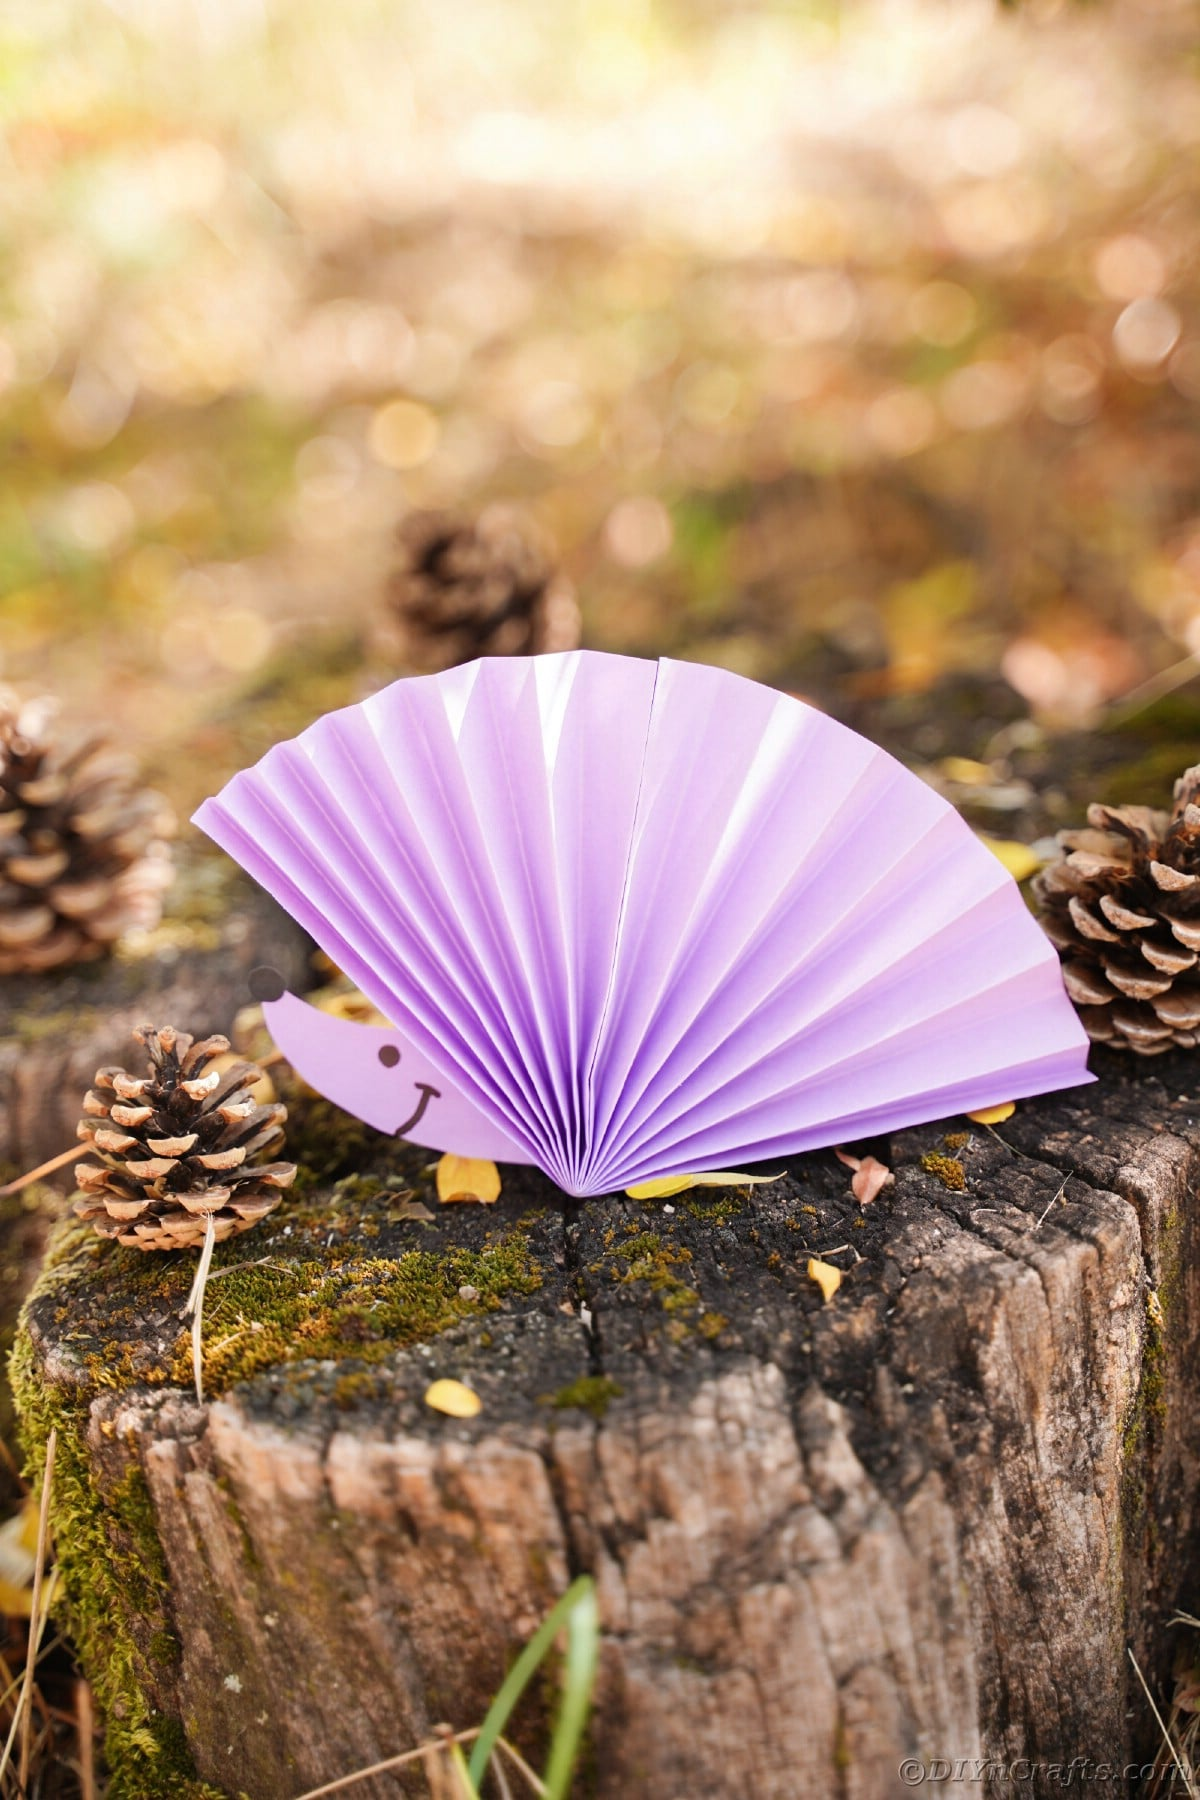 Purple fan with hedgehog face sitting on top of wooden stump